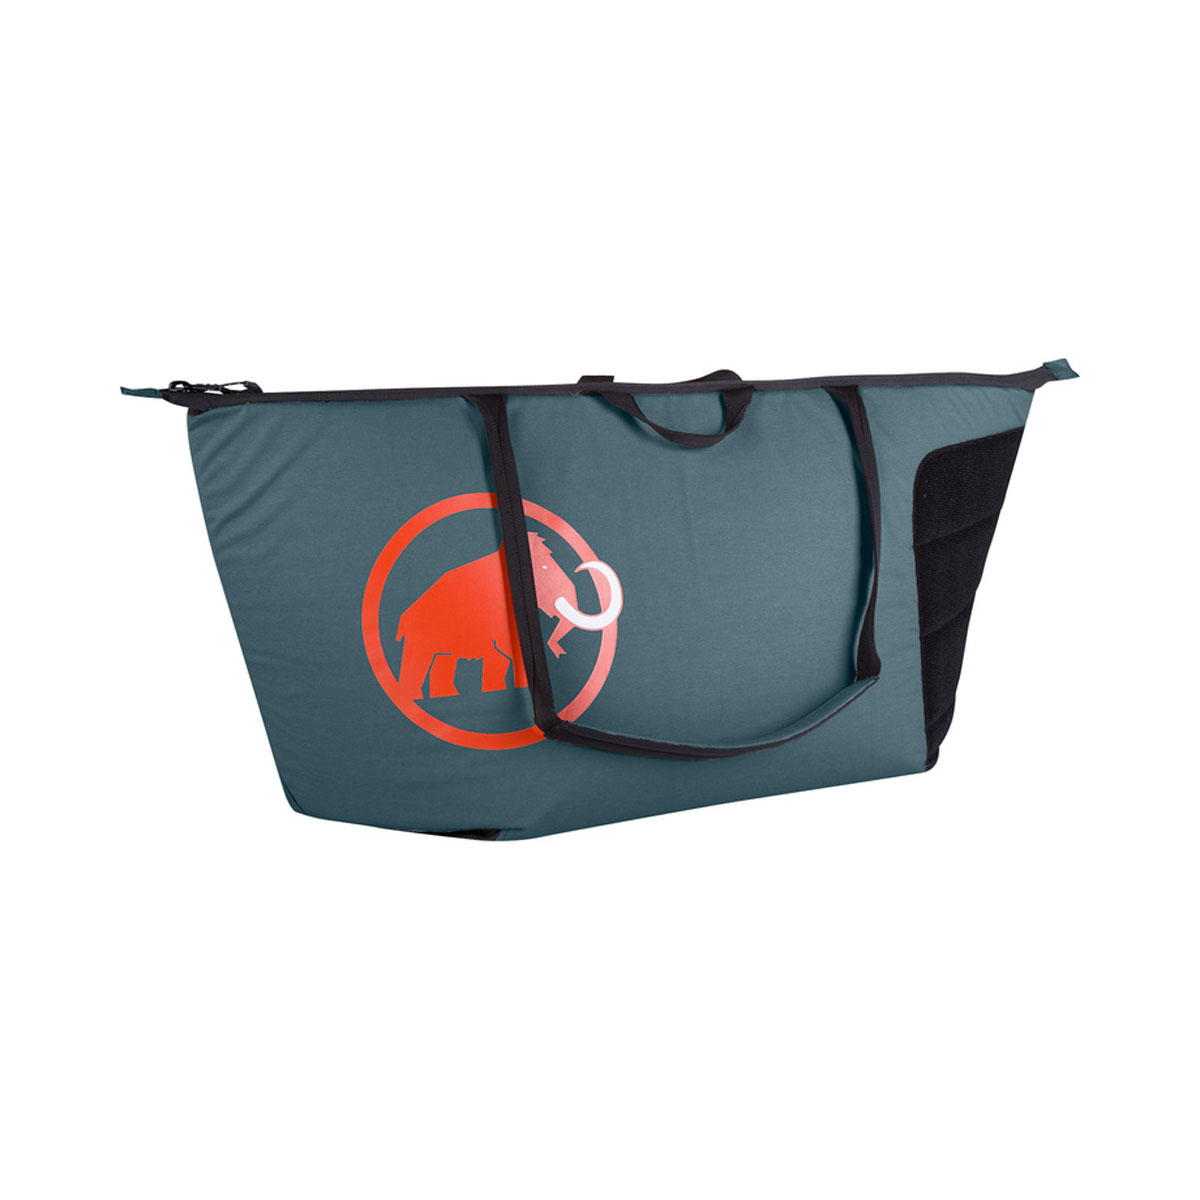 91712e58de Mammut Magic Rope Bag | Sacche portacorda | EpicTV Shop